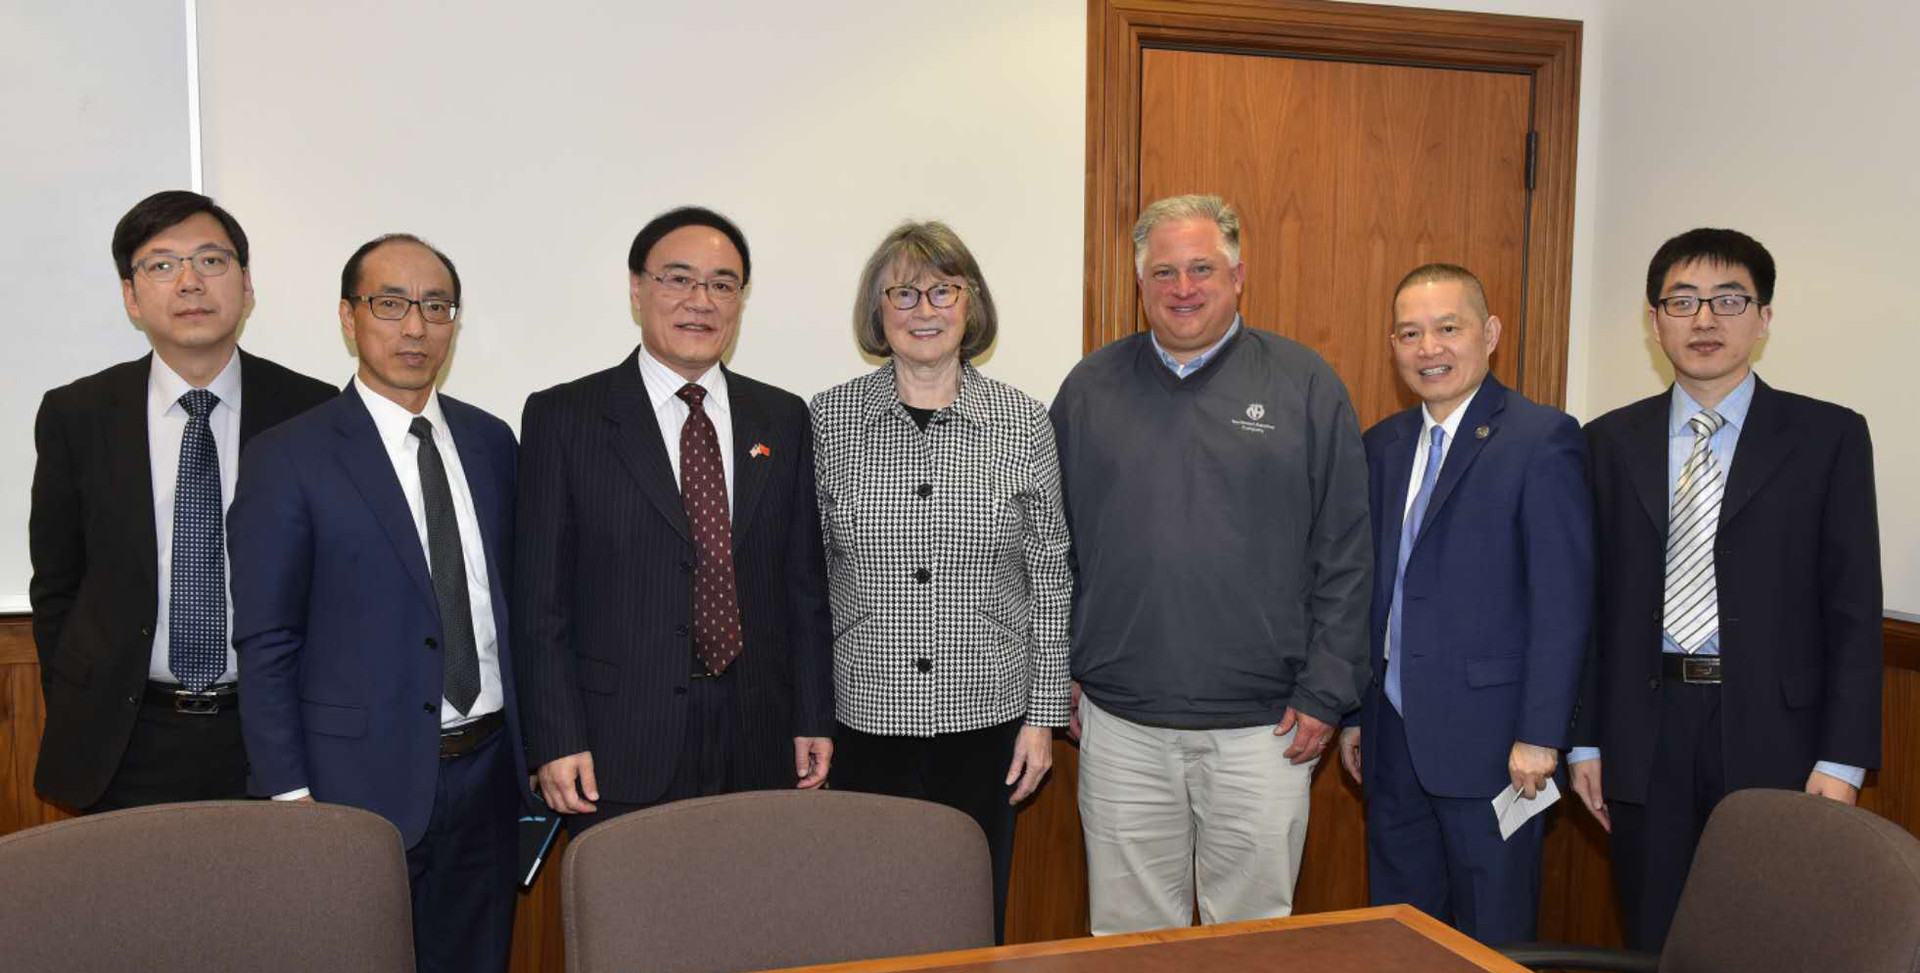 Consul Peng Li, Commercial Counselor Yang Yihang, Consul General Wang Donghua, Senate Majority Leader Ginny Burdick, Larry George, Jin Lan and Consul Zhang Taiming